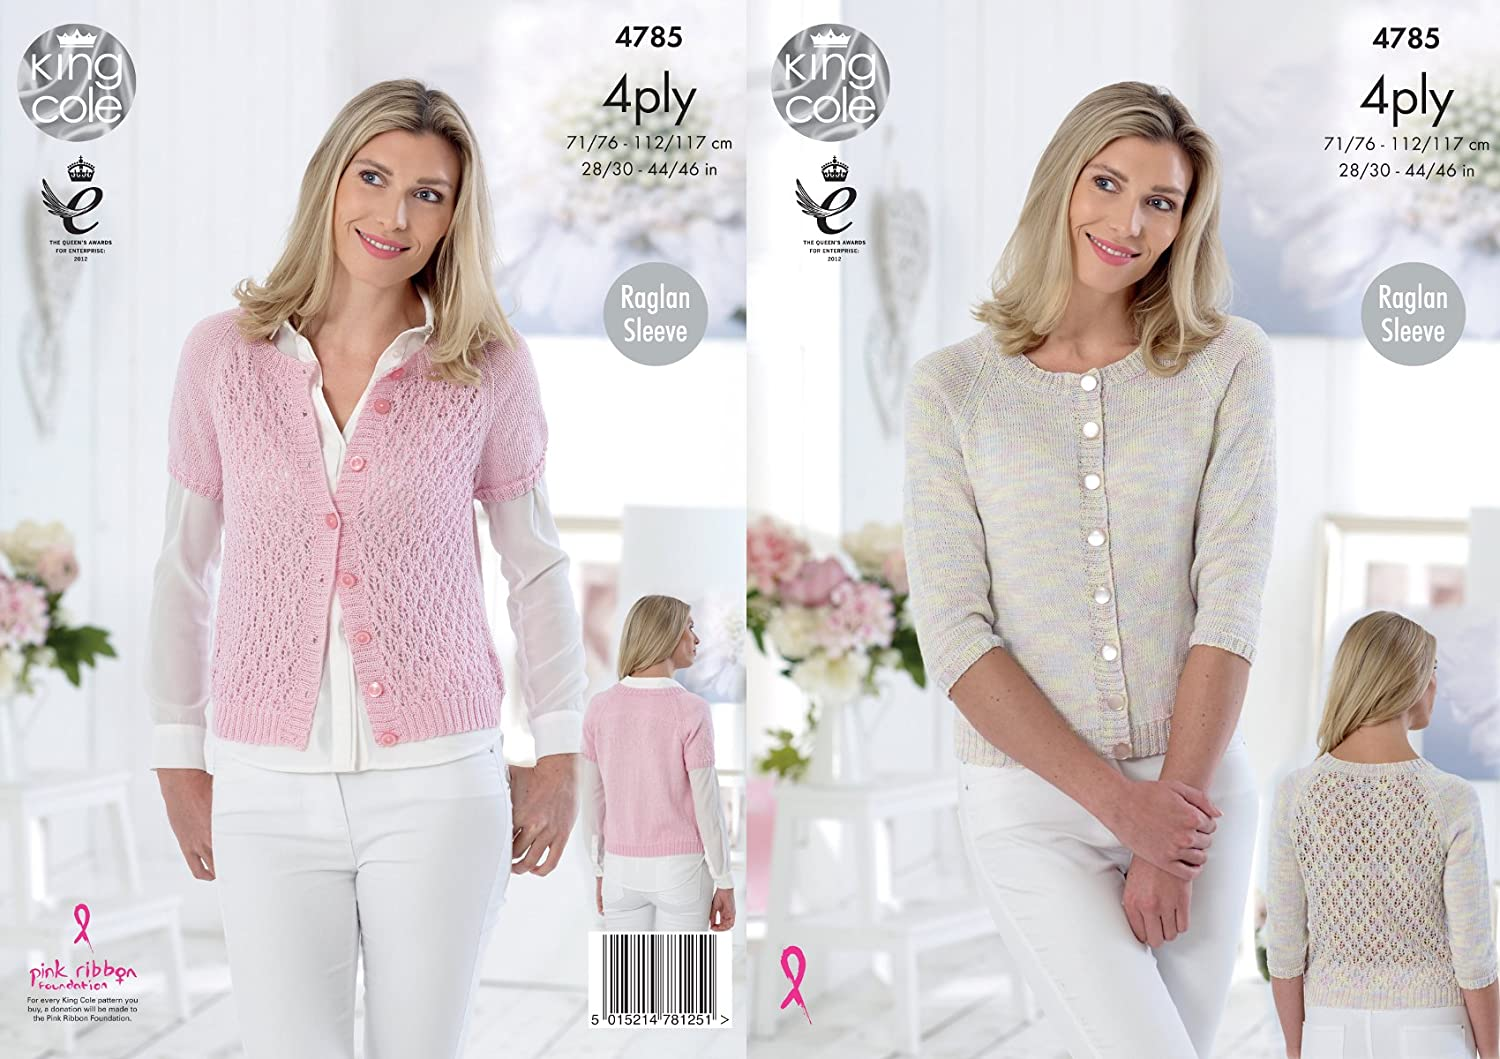 King Cole 4785 Knitting Pattern Womens Raglan Cardigans in King Cole Giza Sorbet and Cotton 4 Ply